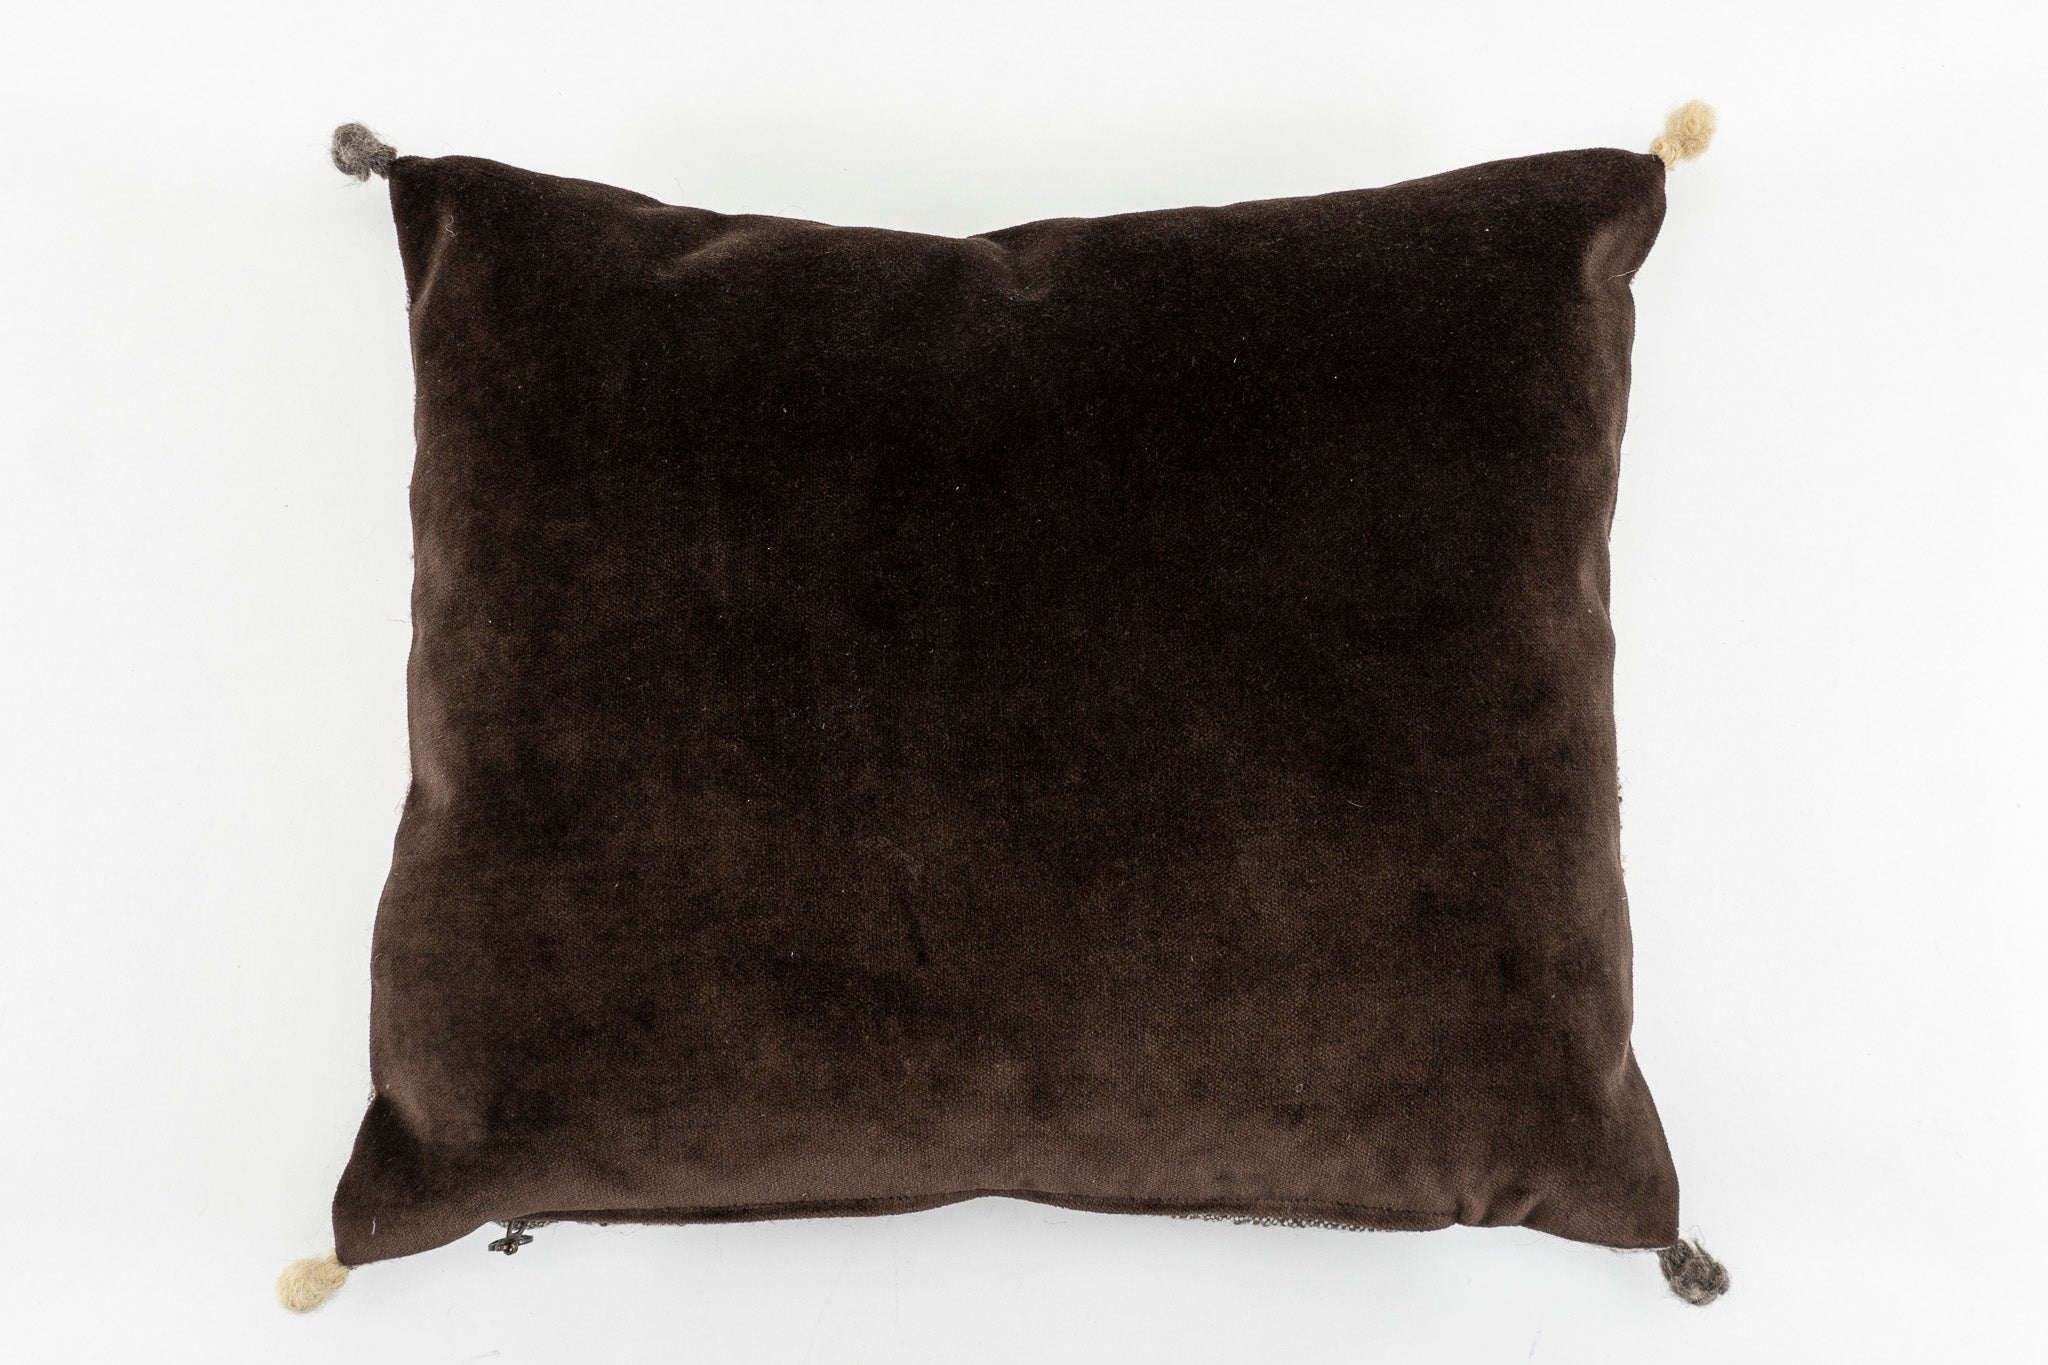 Pillow: Handwoven wool and cotton velvet - P298